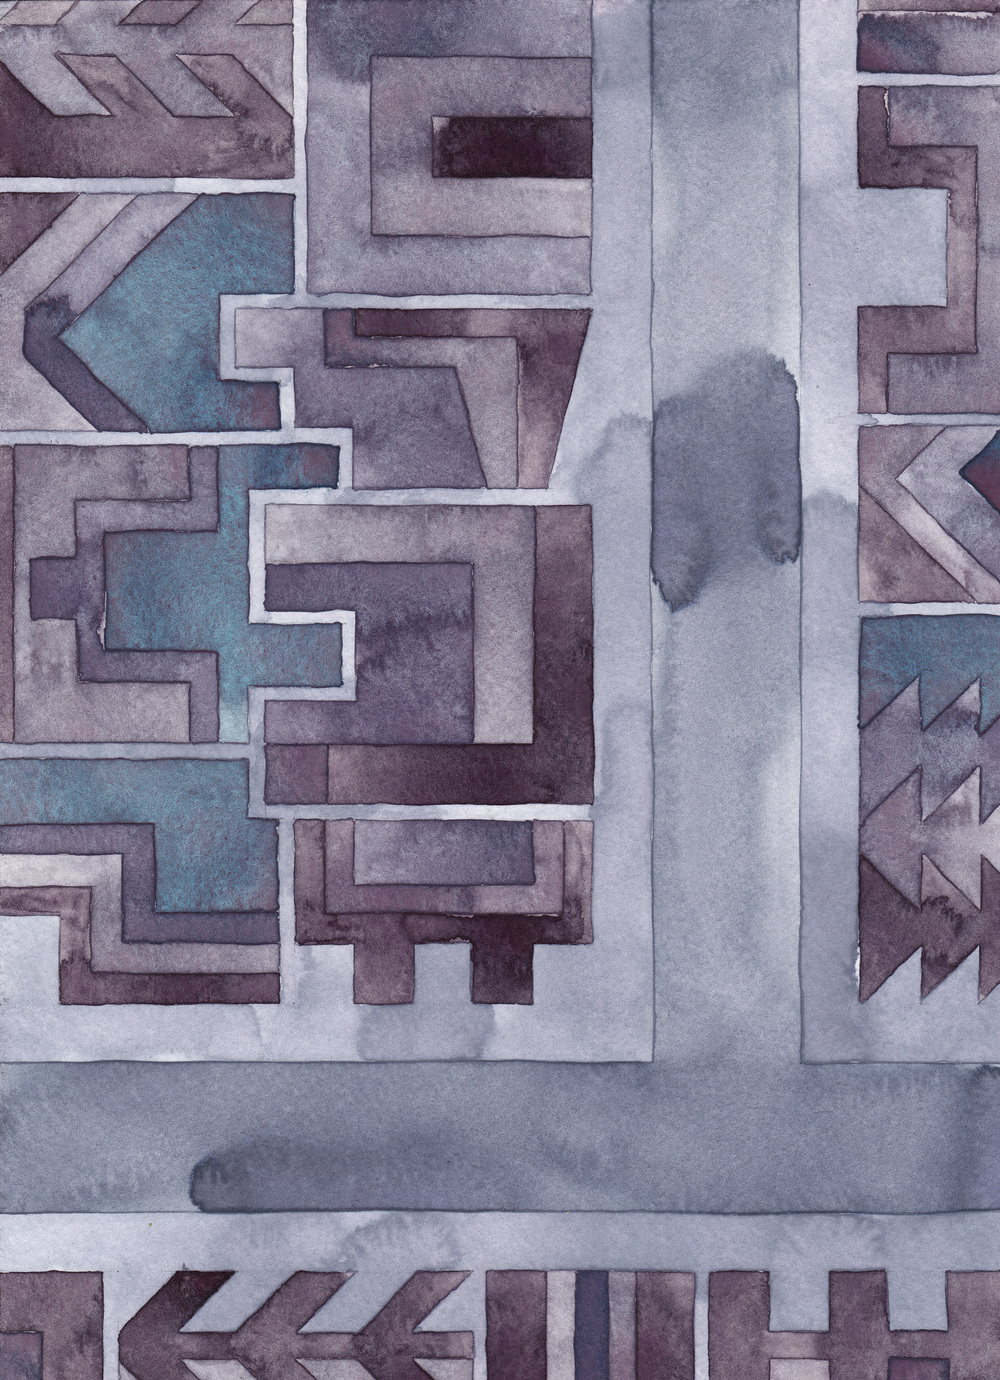 Cityscape 18, 2014 watercolor on watercolor paper 11 ¾ x 8 ½  inches